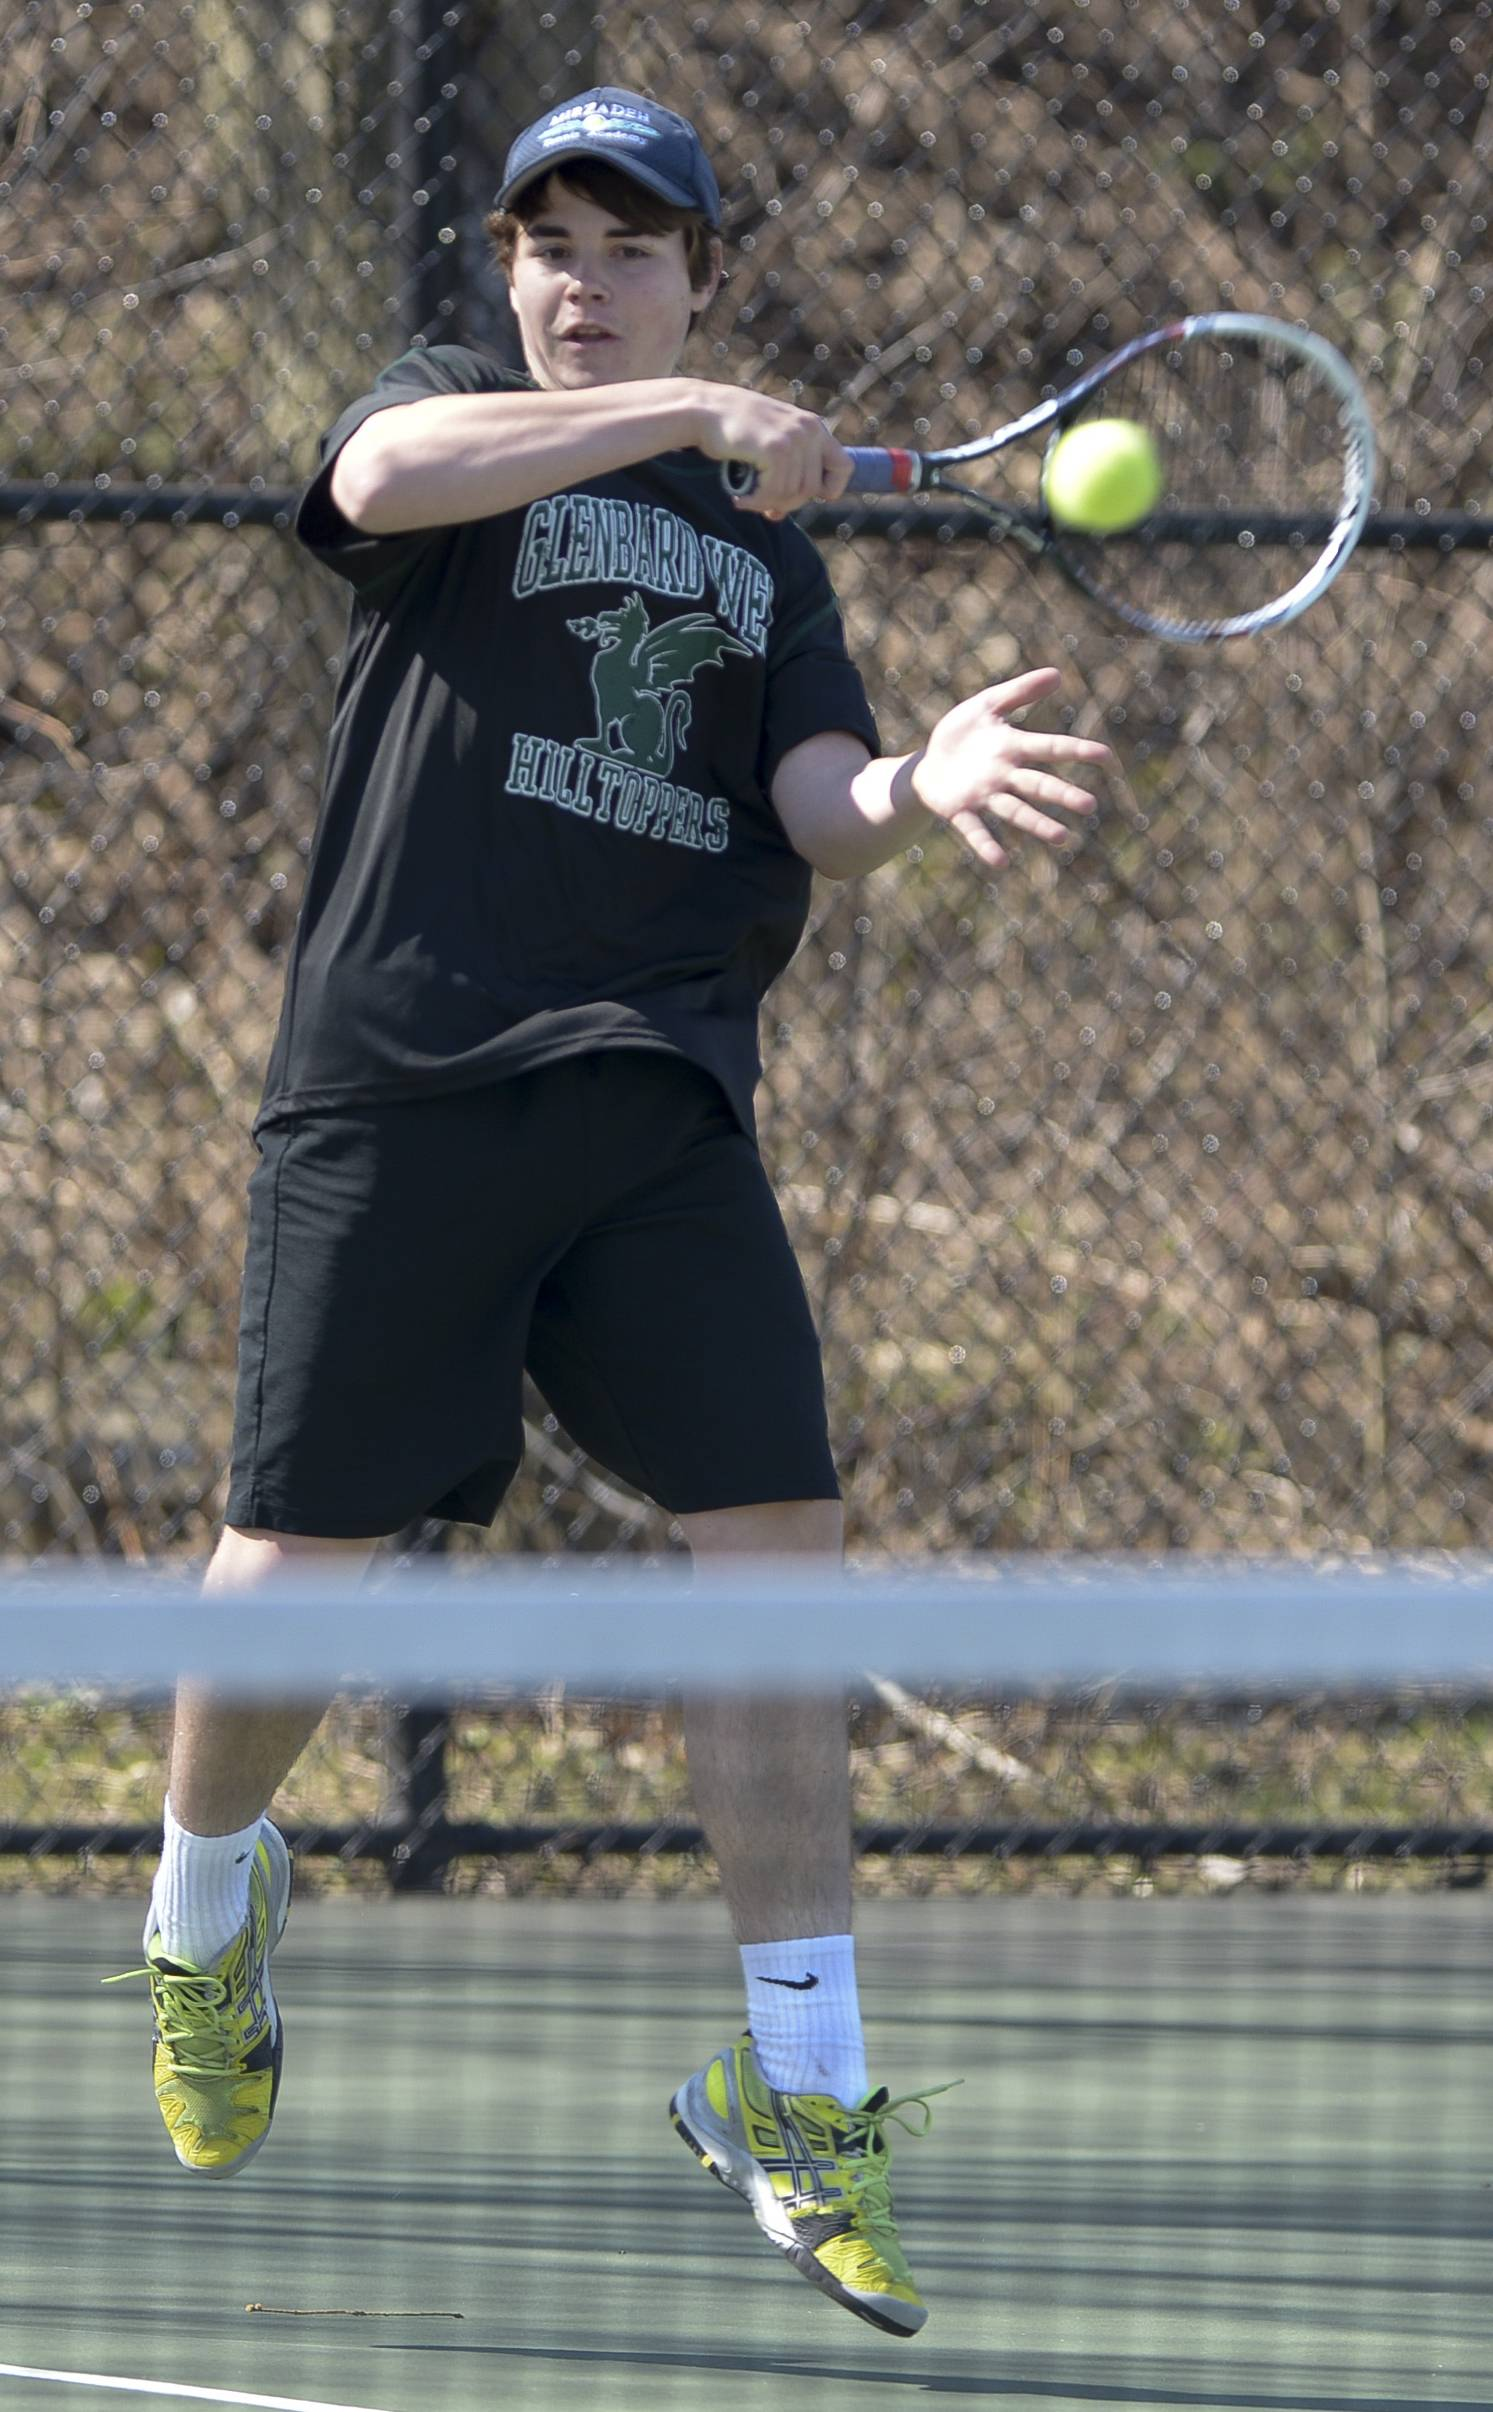 Glenbard West's Nate Dell completes against Palatine's Mark Scovic during the Glenbard West boys tennis invitational.